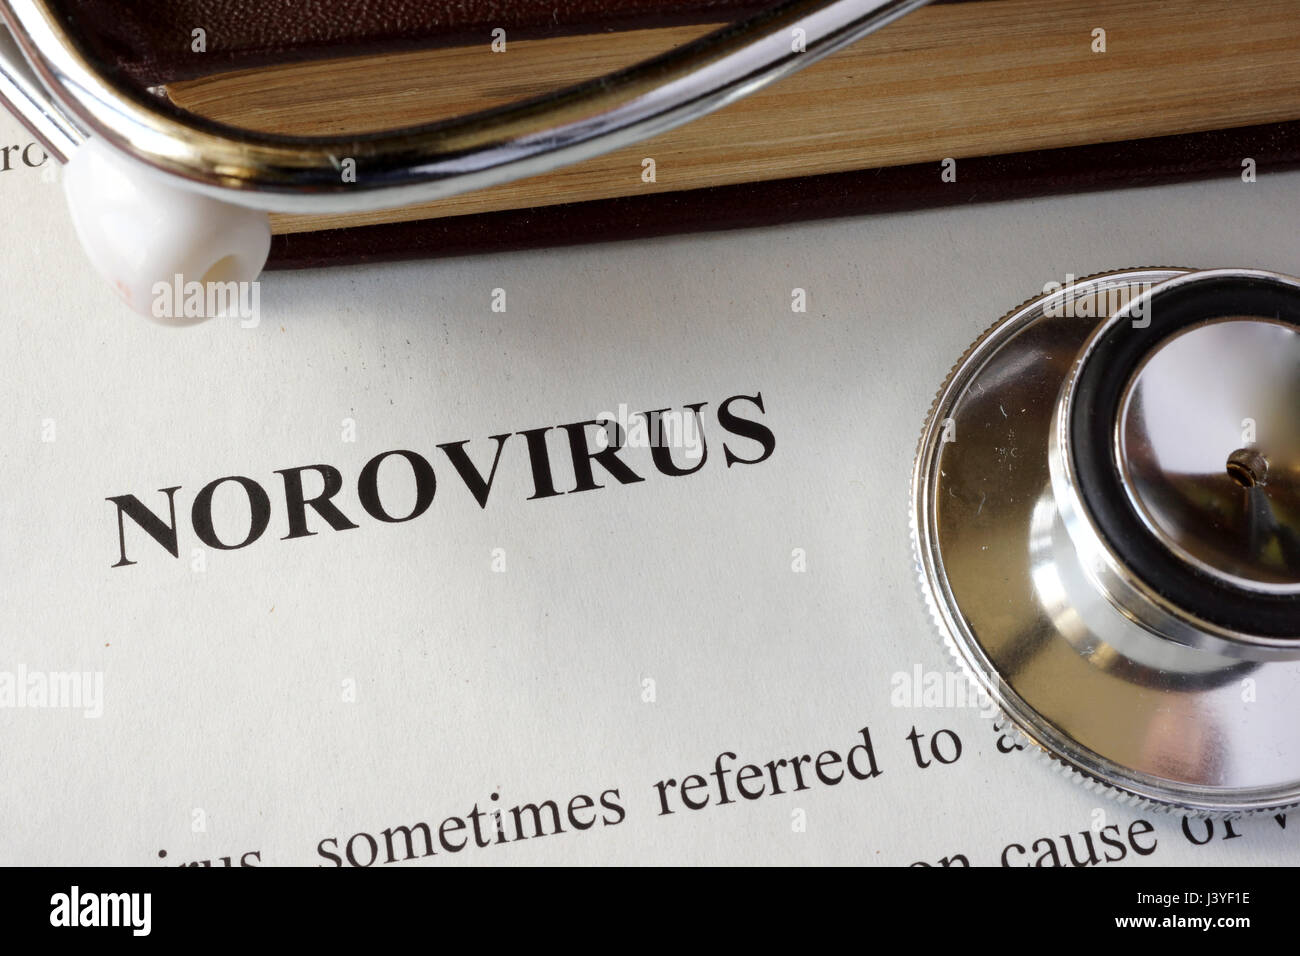 Norovirus Infection Stock Photos Amp Norovirus Infection